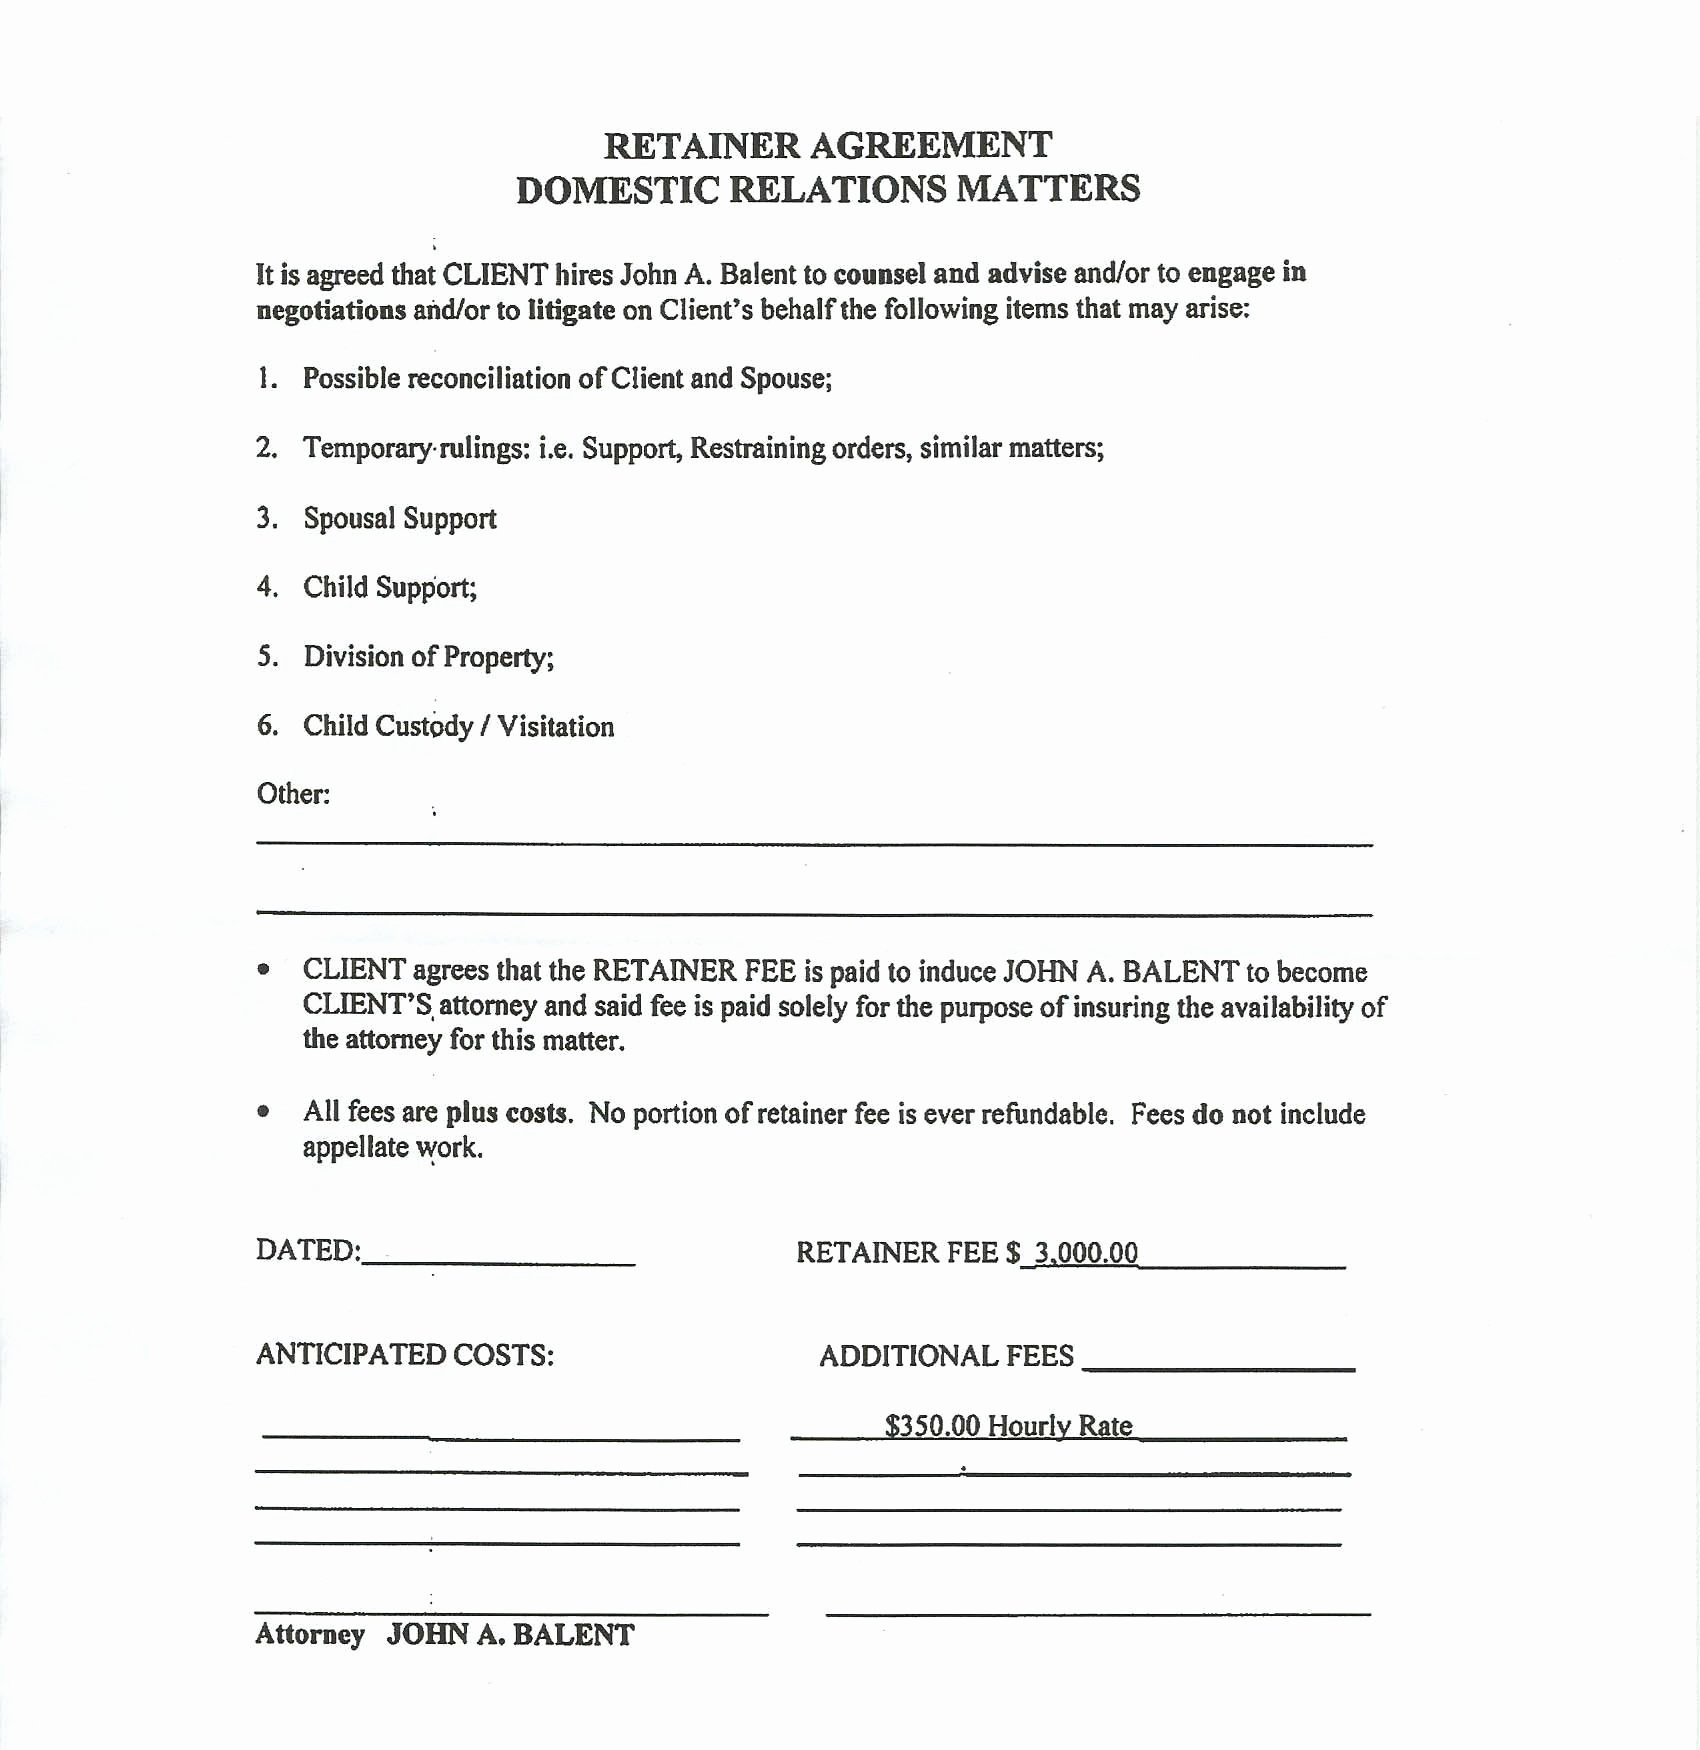 Private Child Support Agreement Template Elegant Retainer Agreement Sample